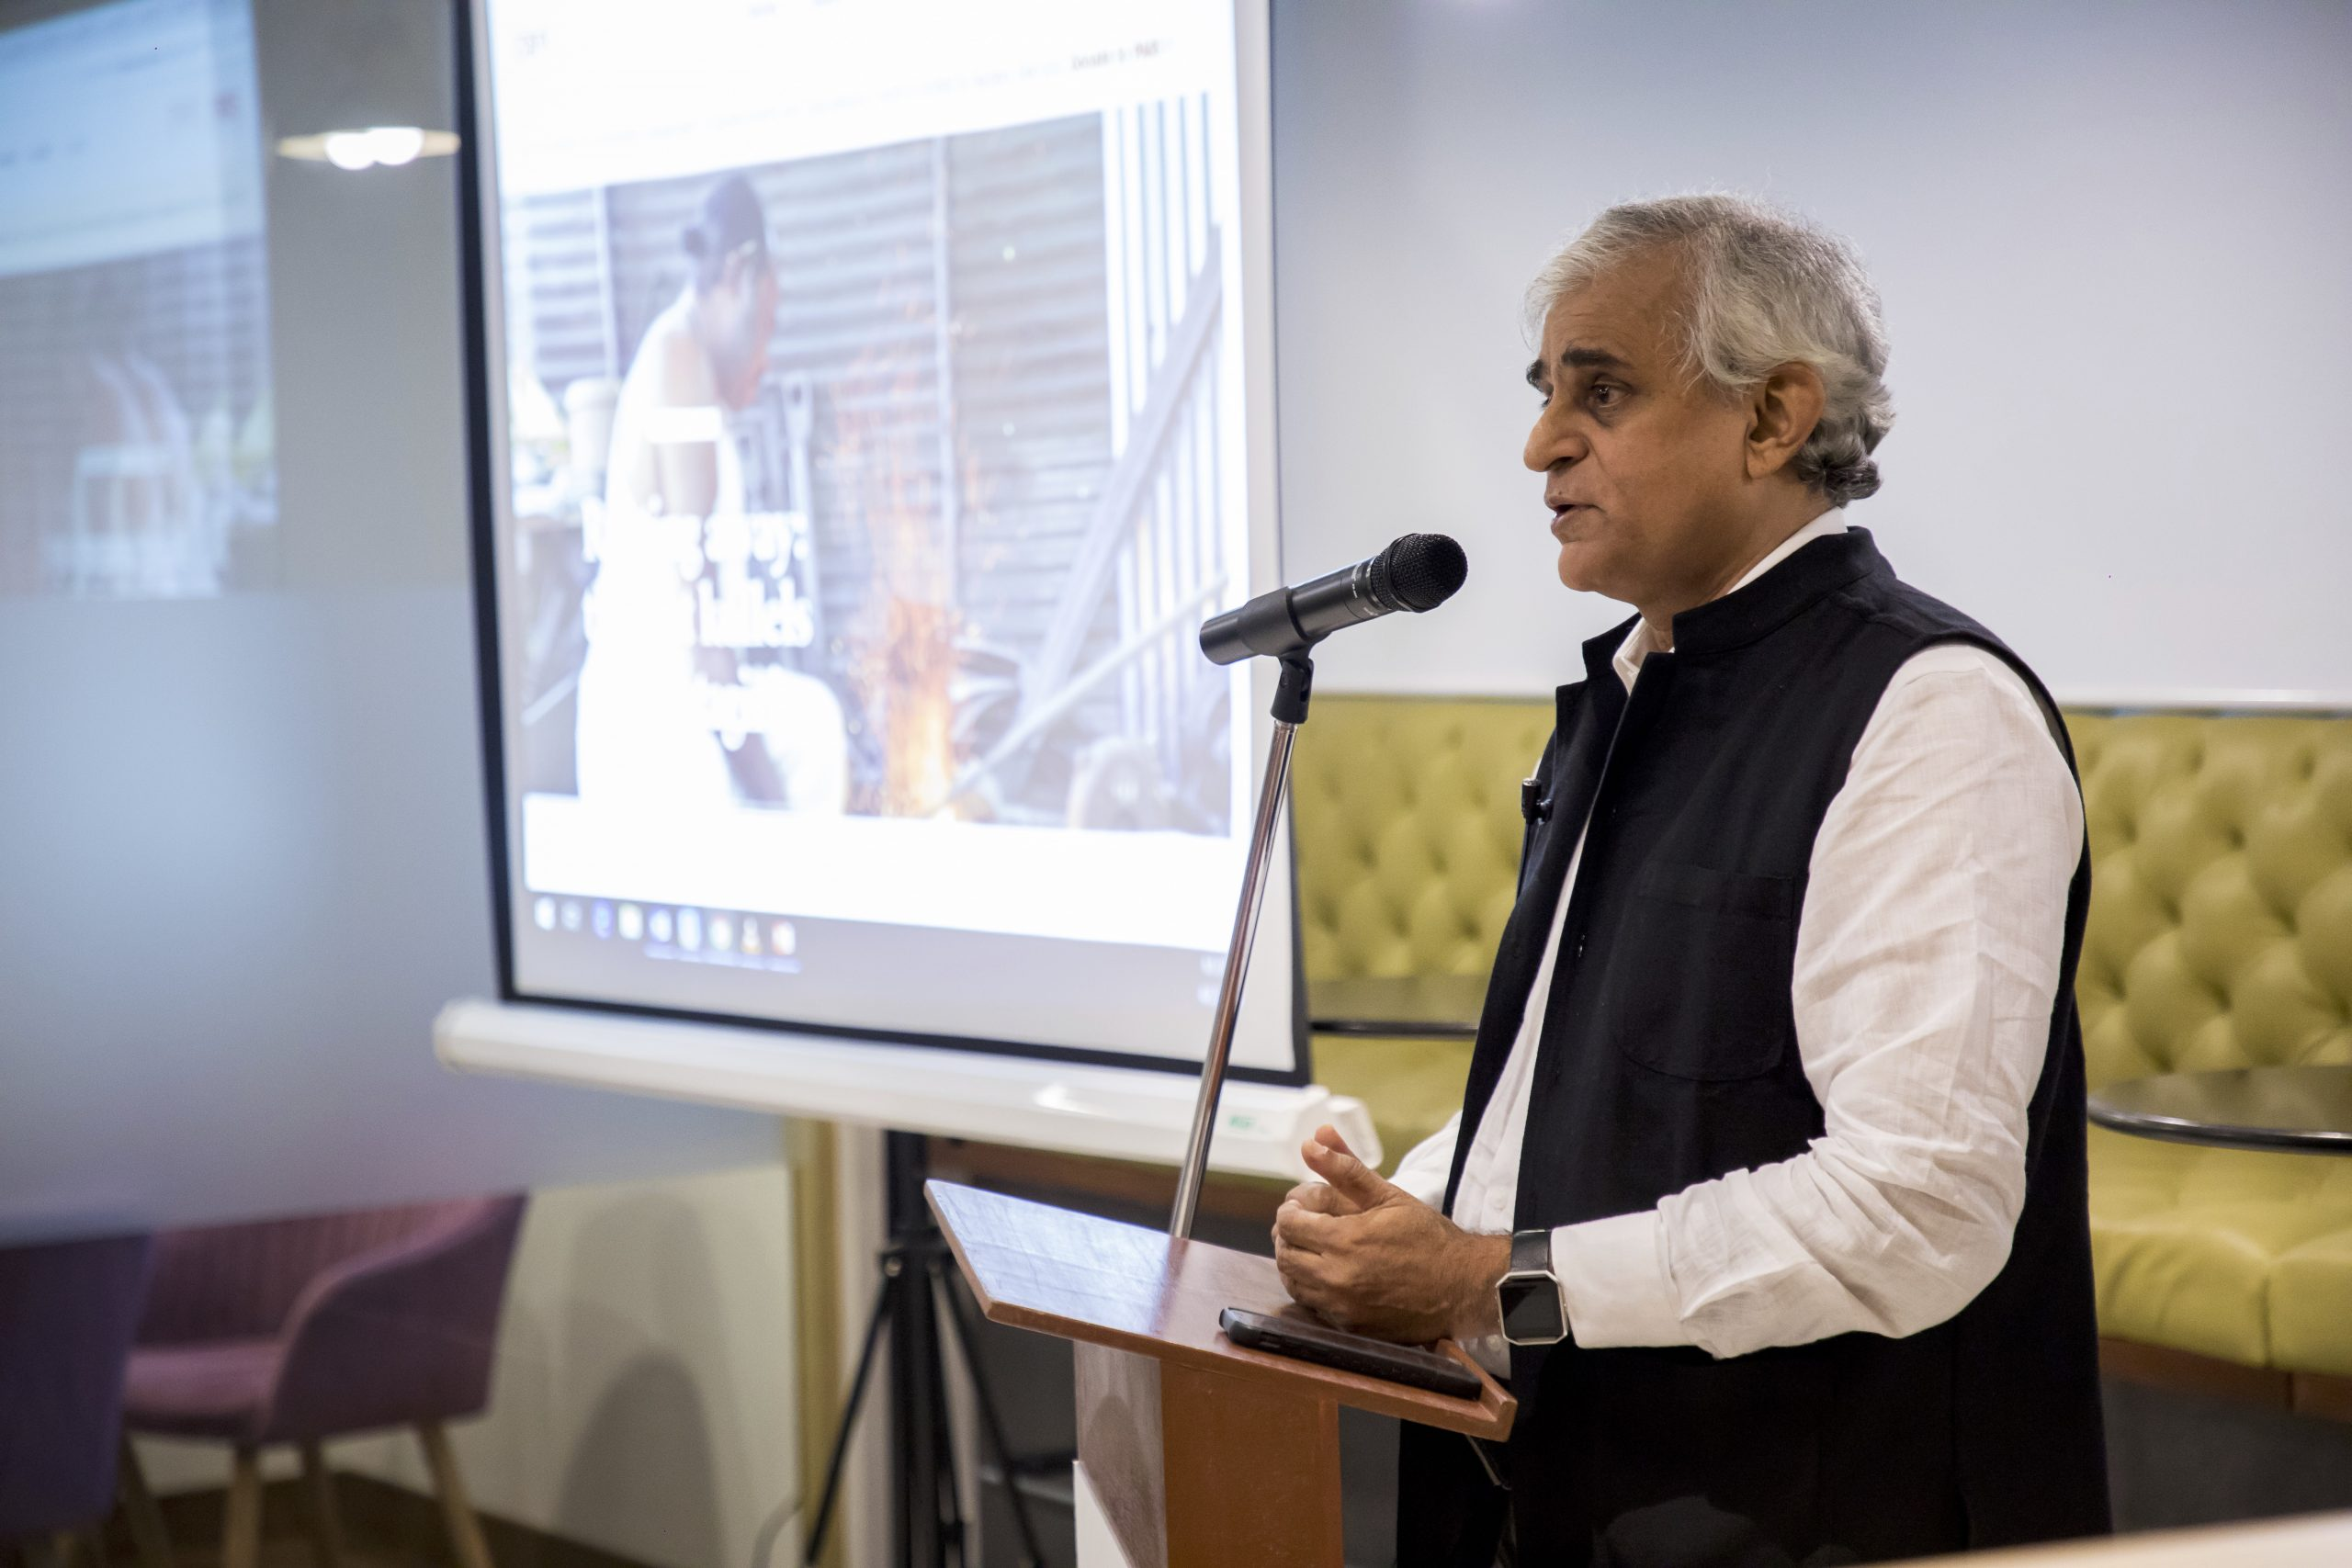 P Sainath giving a talk on India's agrarian crisis, water scarcity, and farmer suicides - India Development Review IDR - Photo courtesy: Dextrus